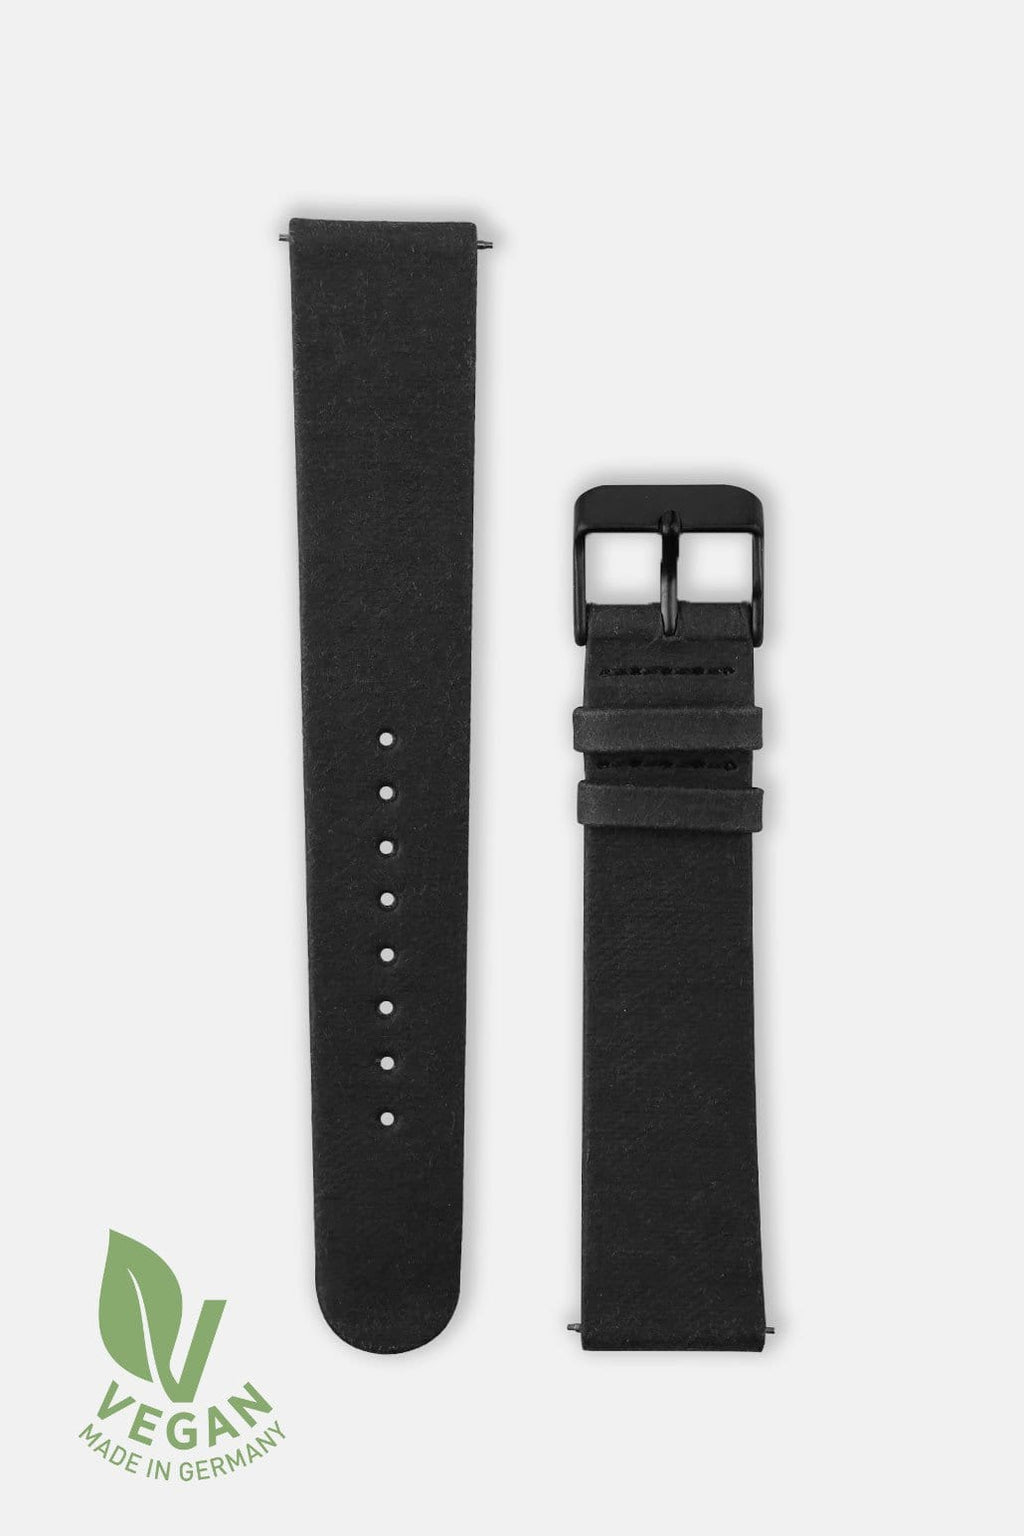 WRISTBAND 20mm VEGAN